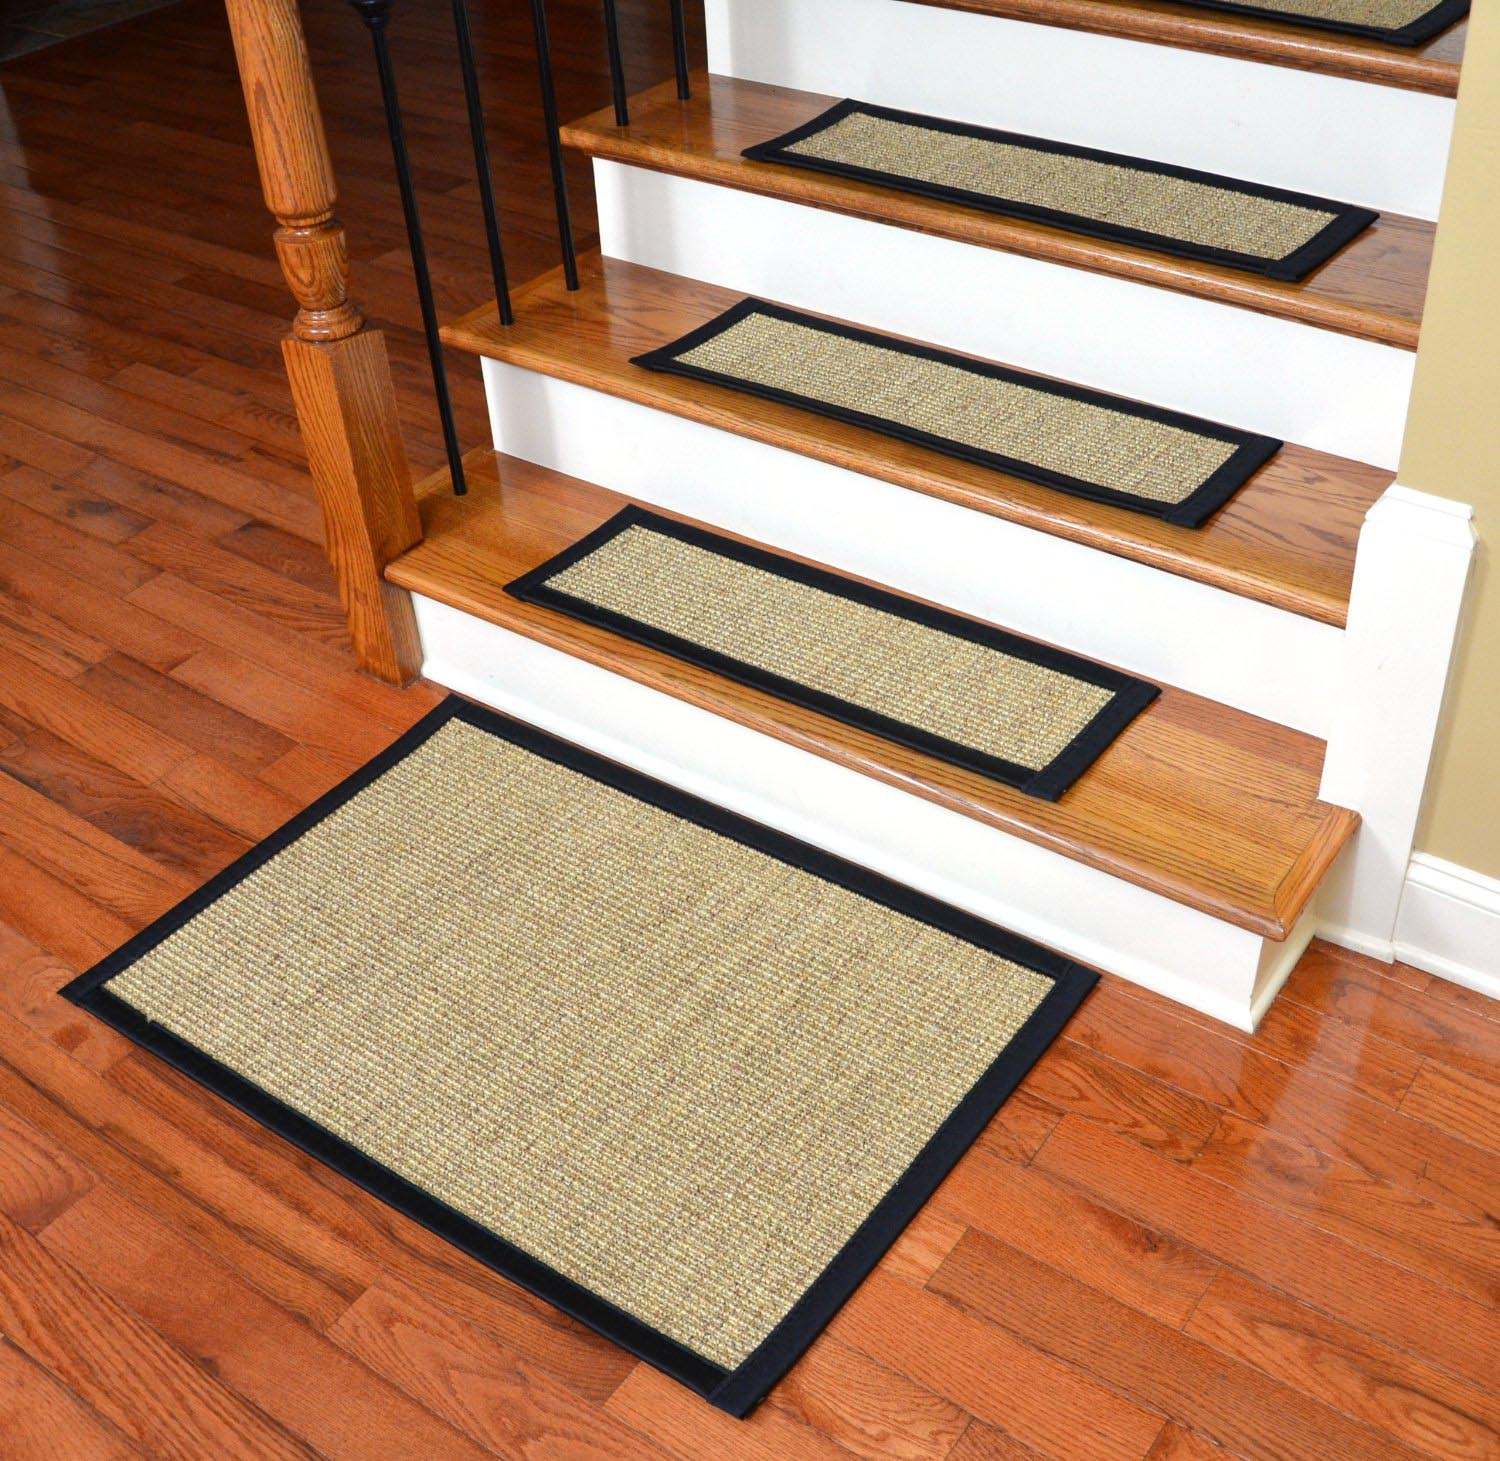 Attachable Carpet Stair Treads Best Decor Things